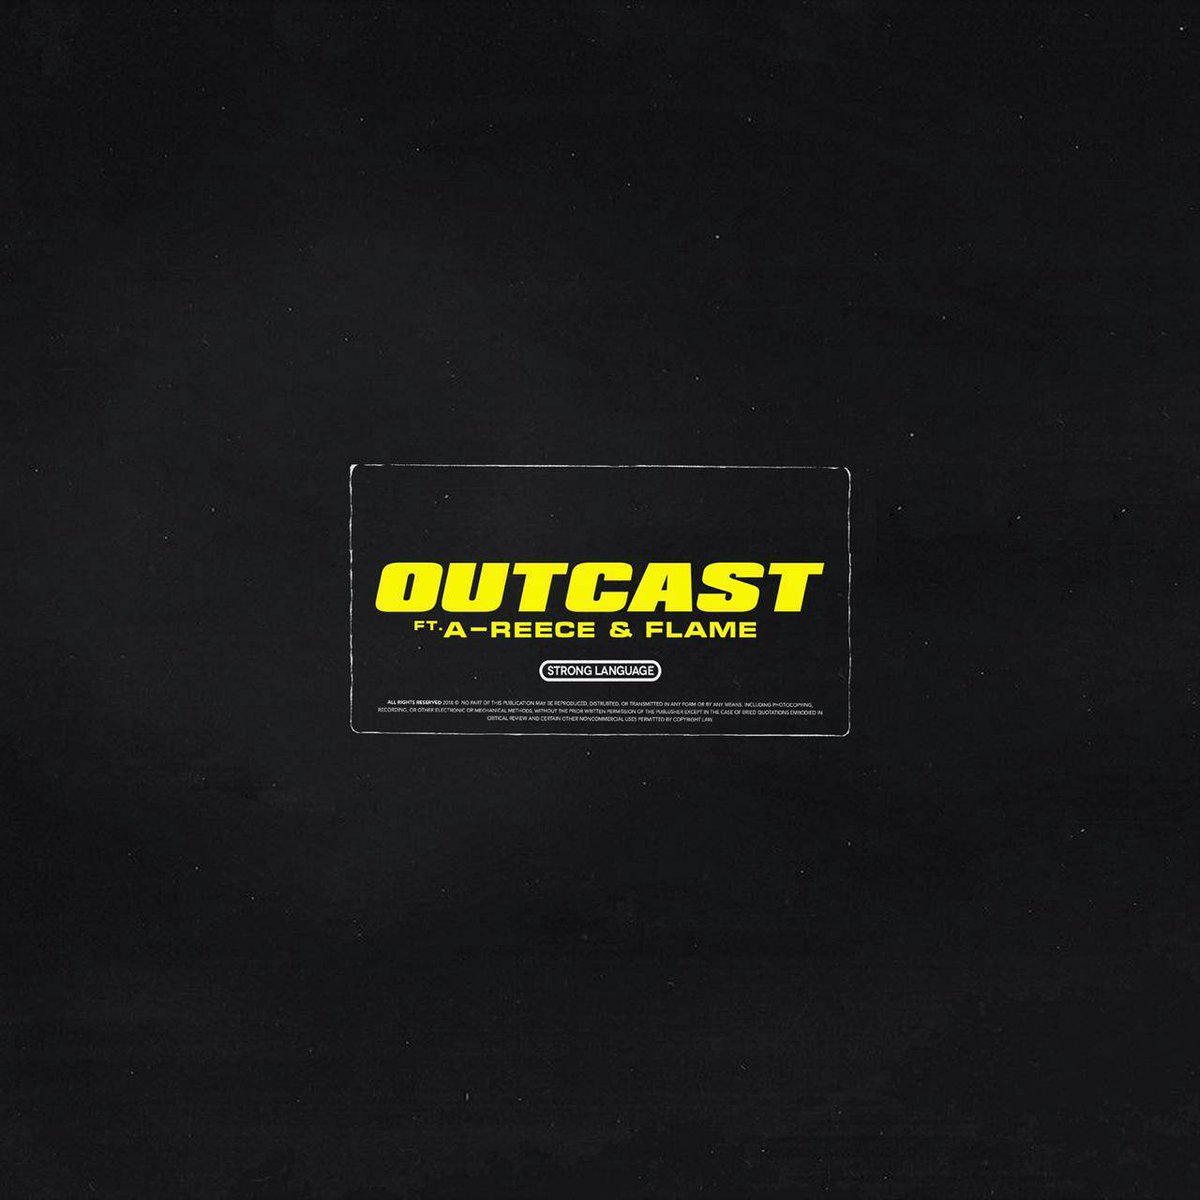 the big hash Listen To The Big Hash's New 'Outcast' Joint Ft. A-Reece & Flame DuhxFZ7X4AAR3Nz